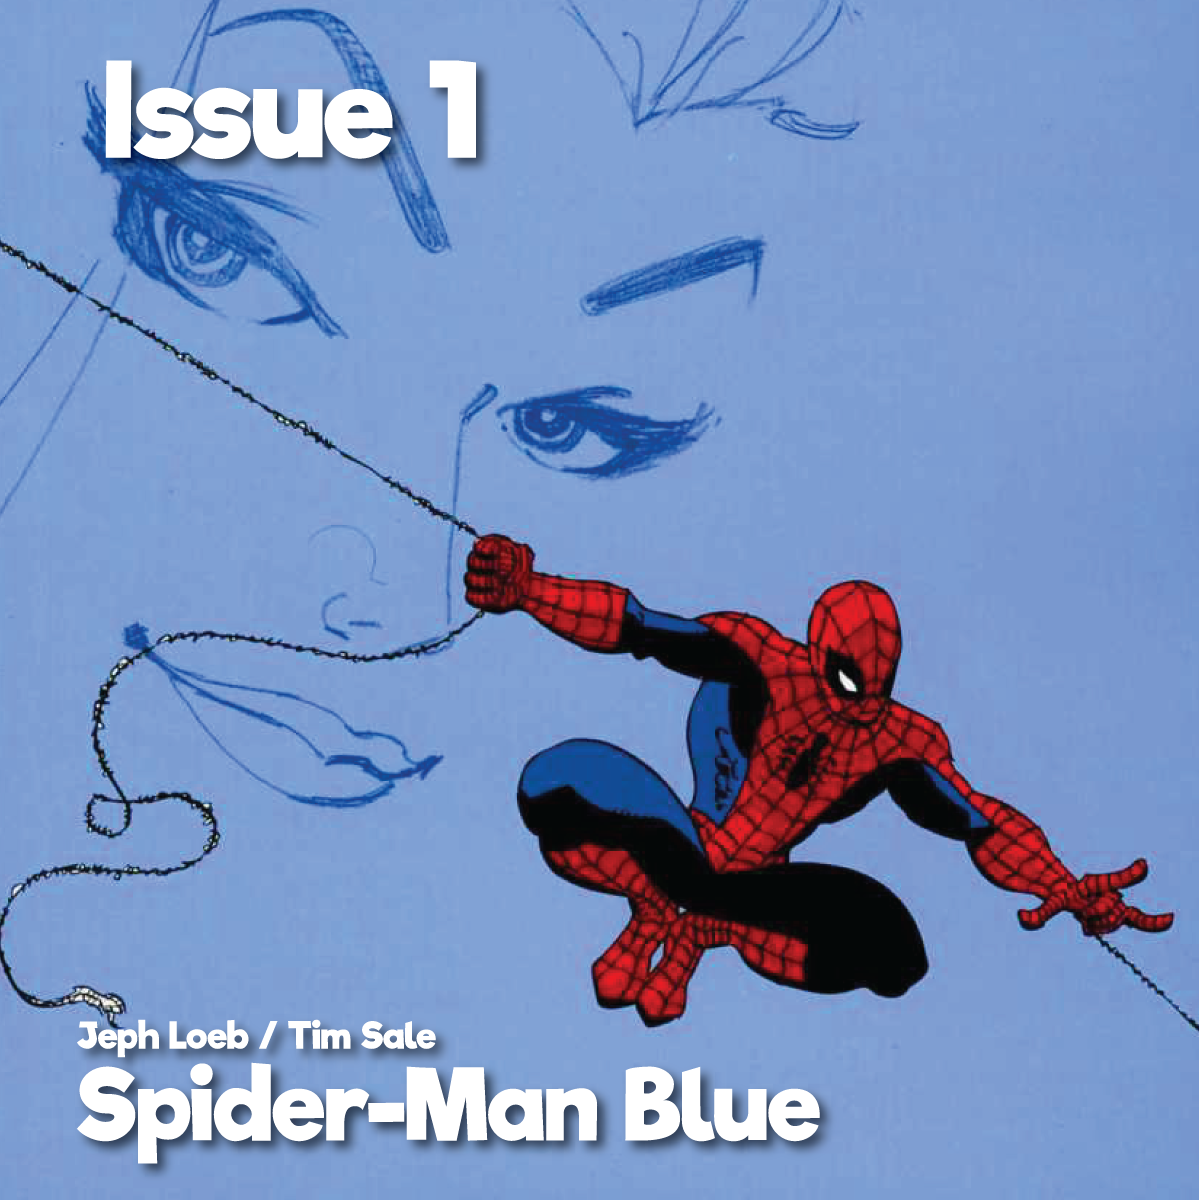 Issue1_Spiderman_1200x1200.png